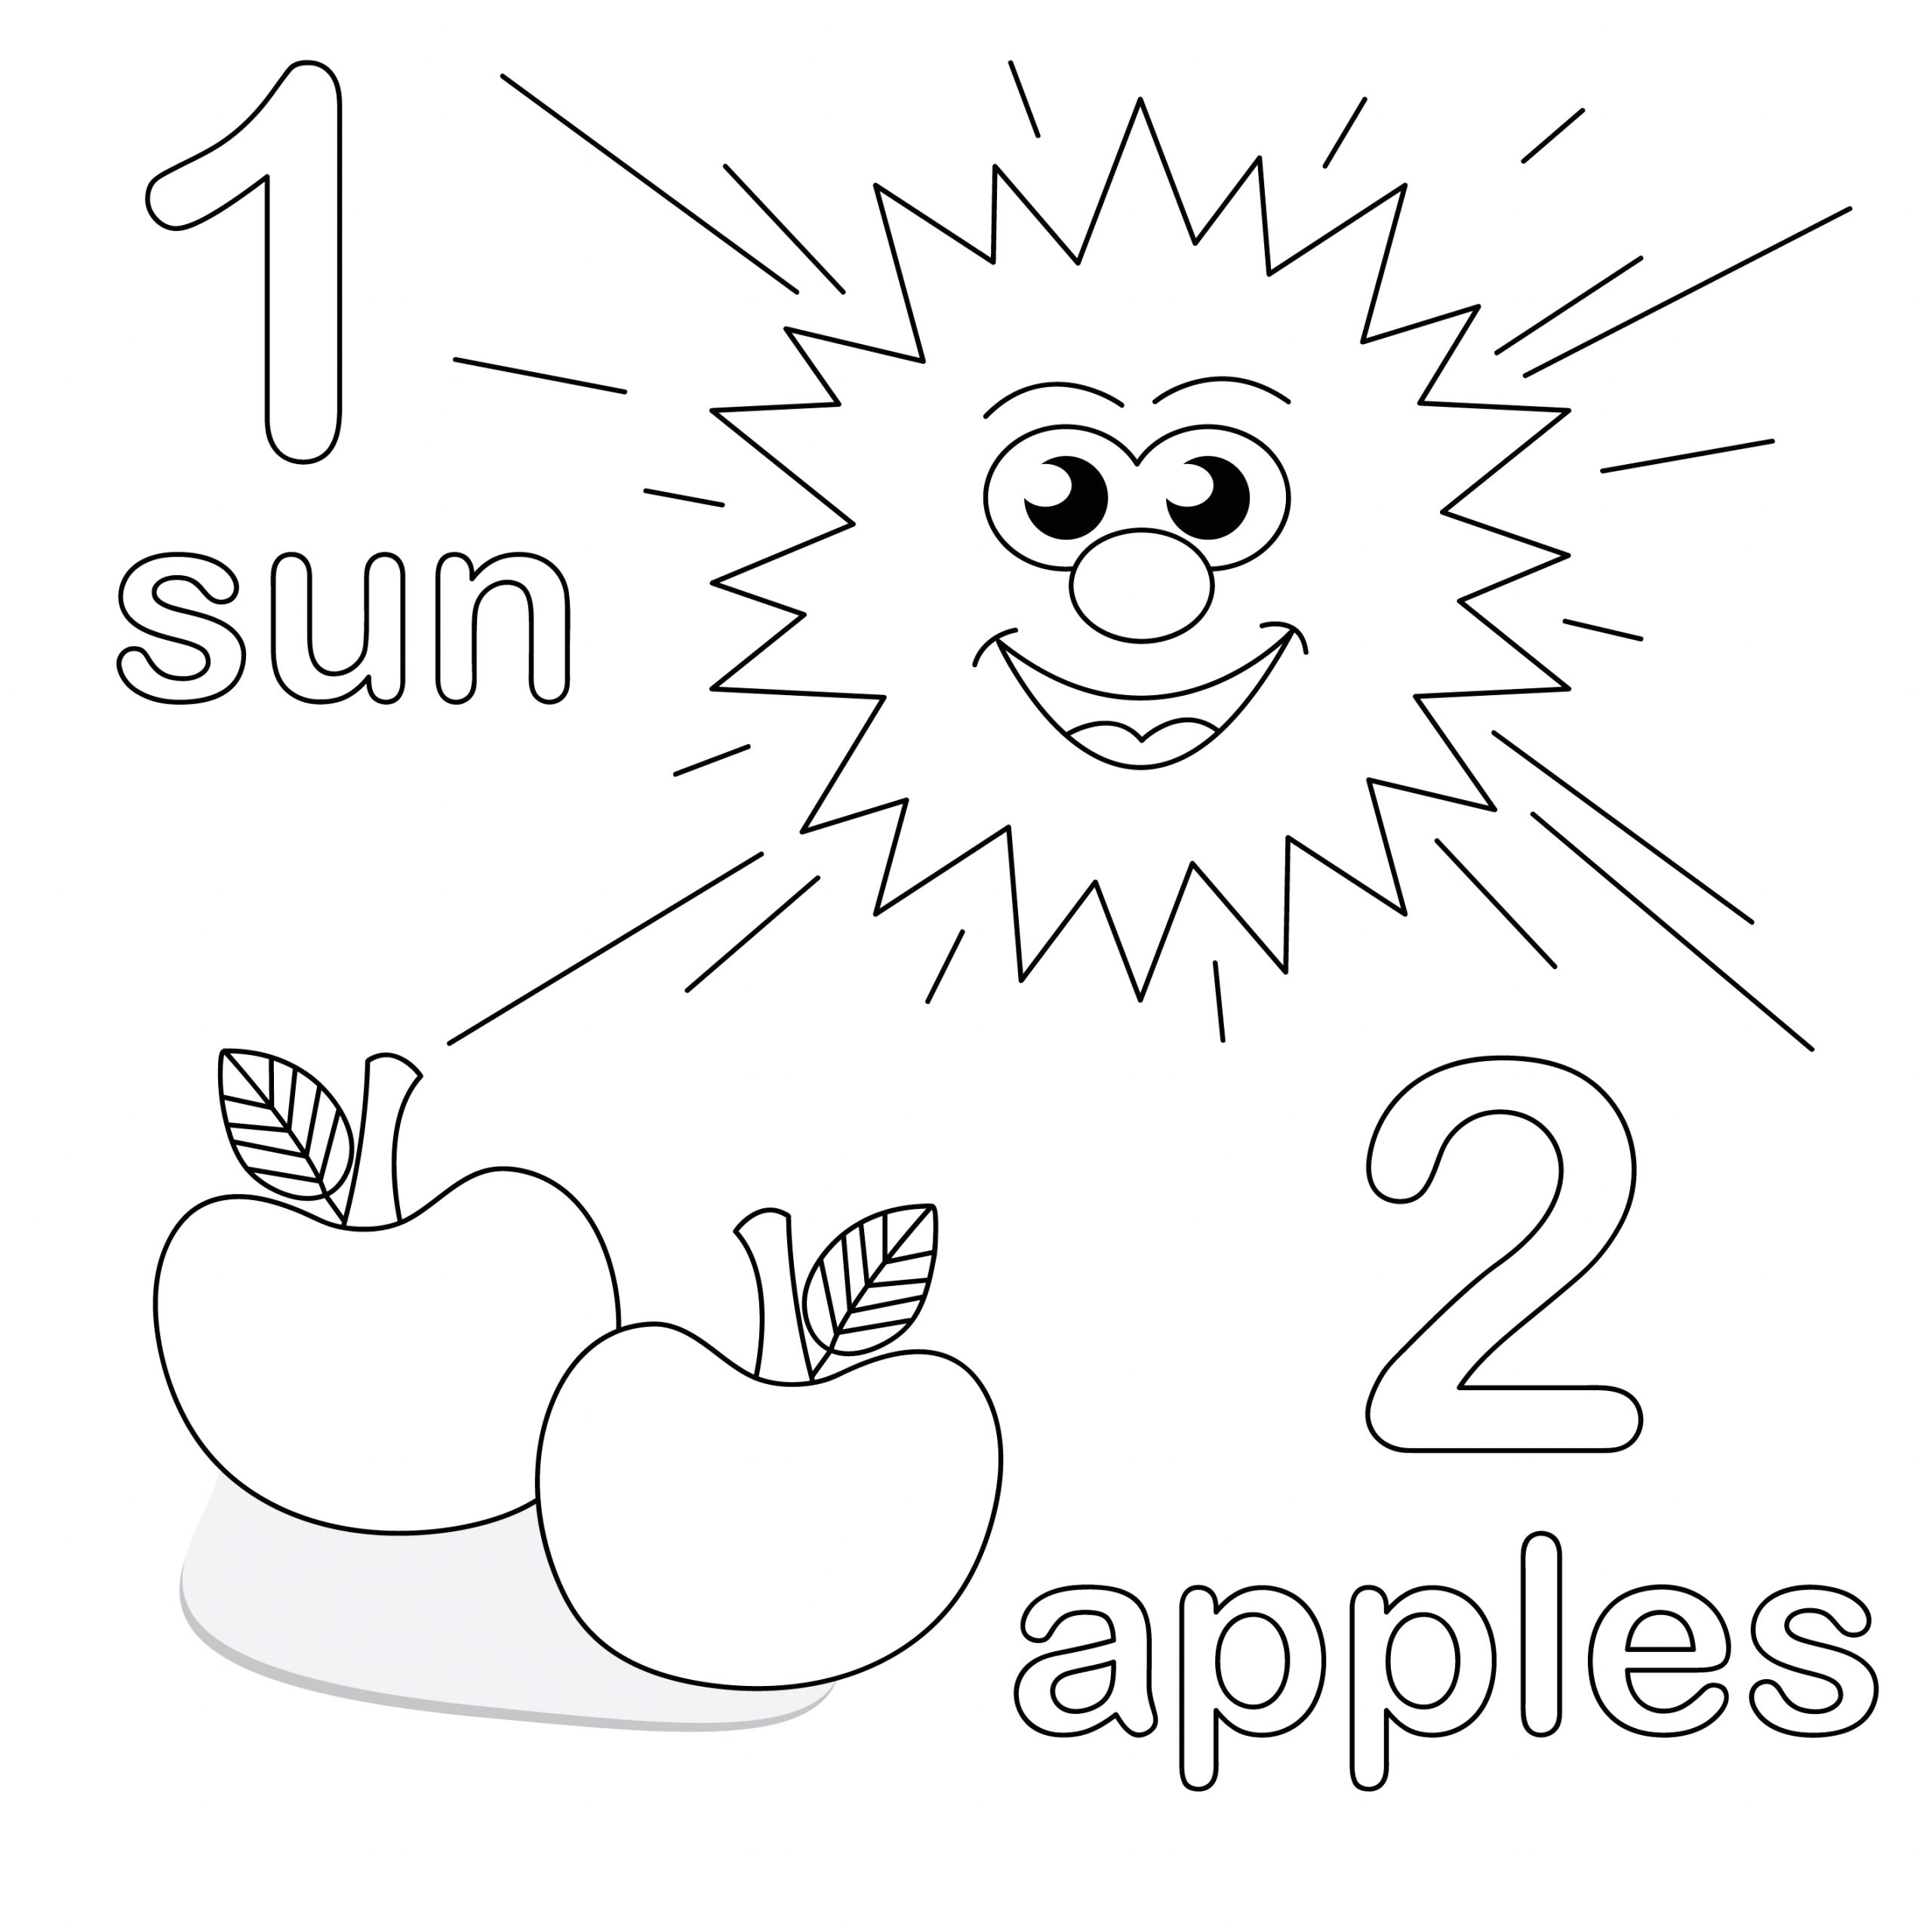 Free Printable Coloring Pages for Pre K Pre K Coloring Pages at Getdrawings